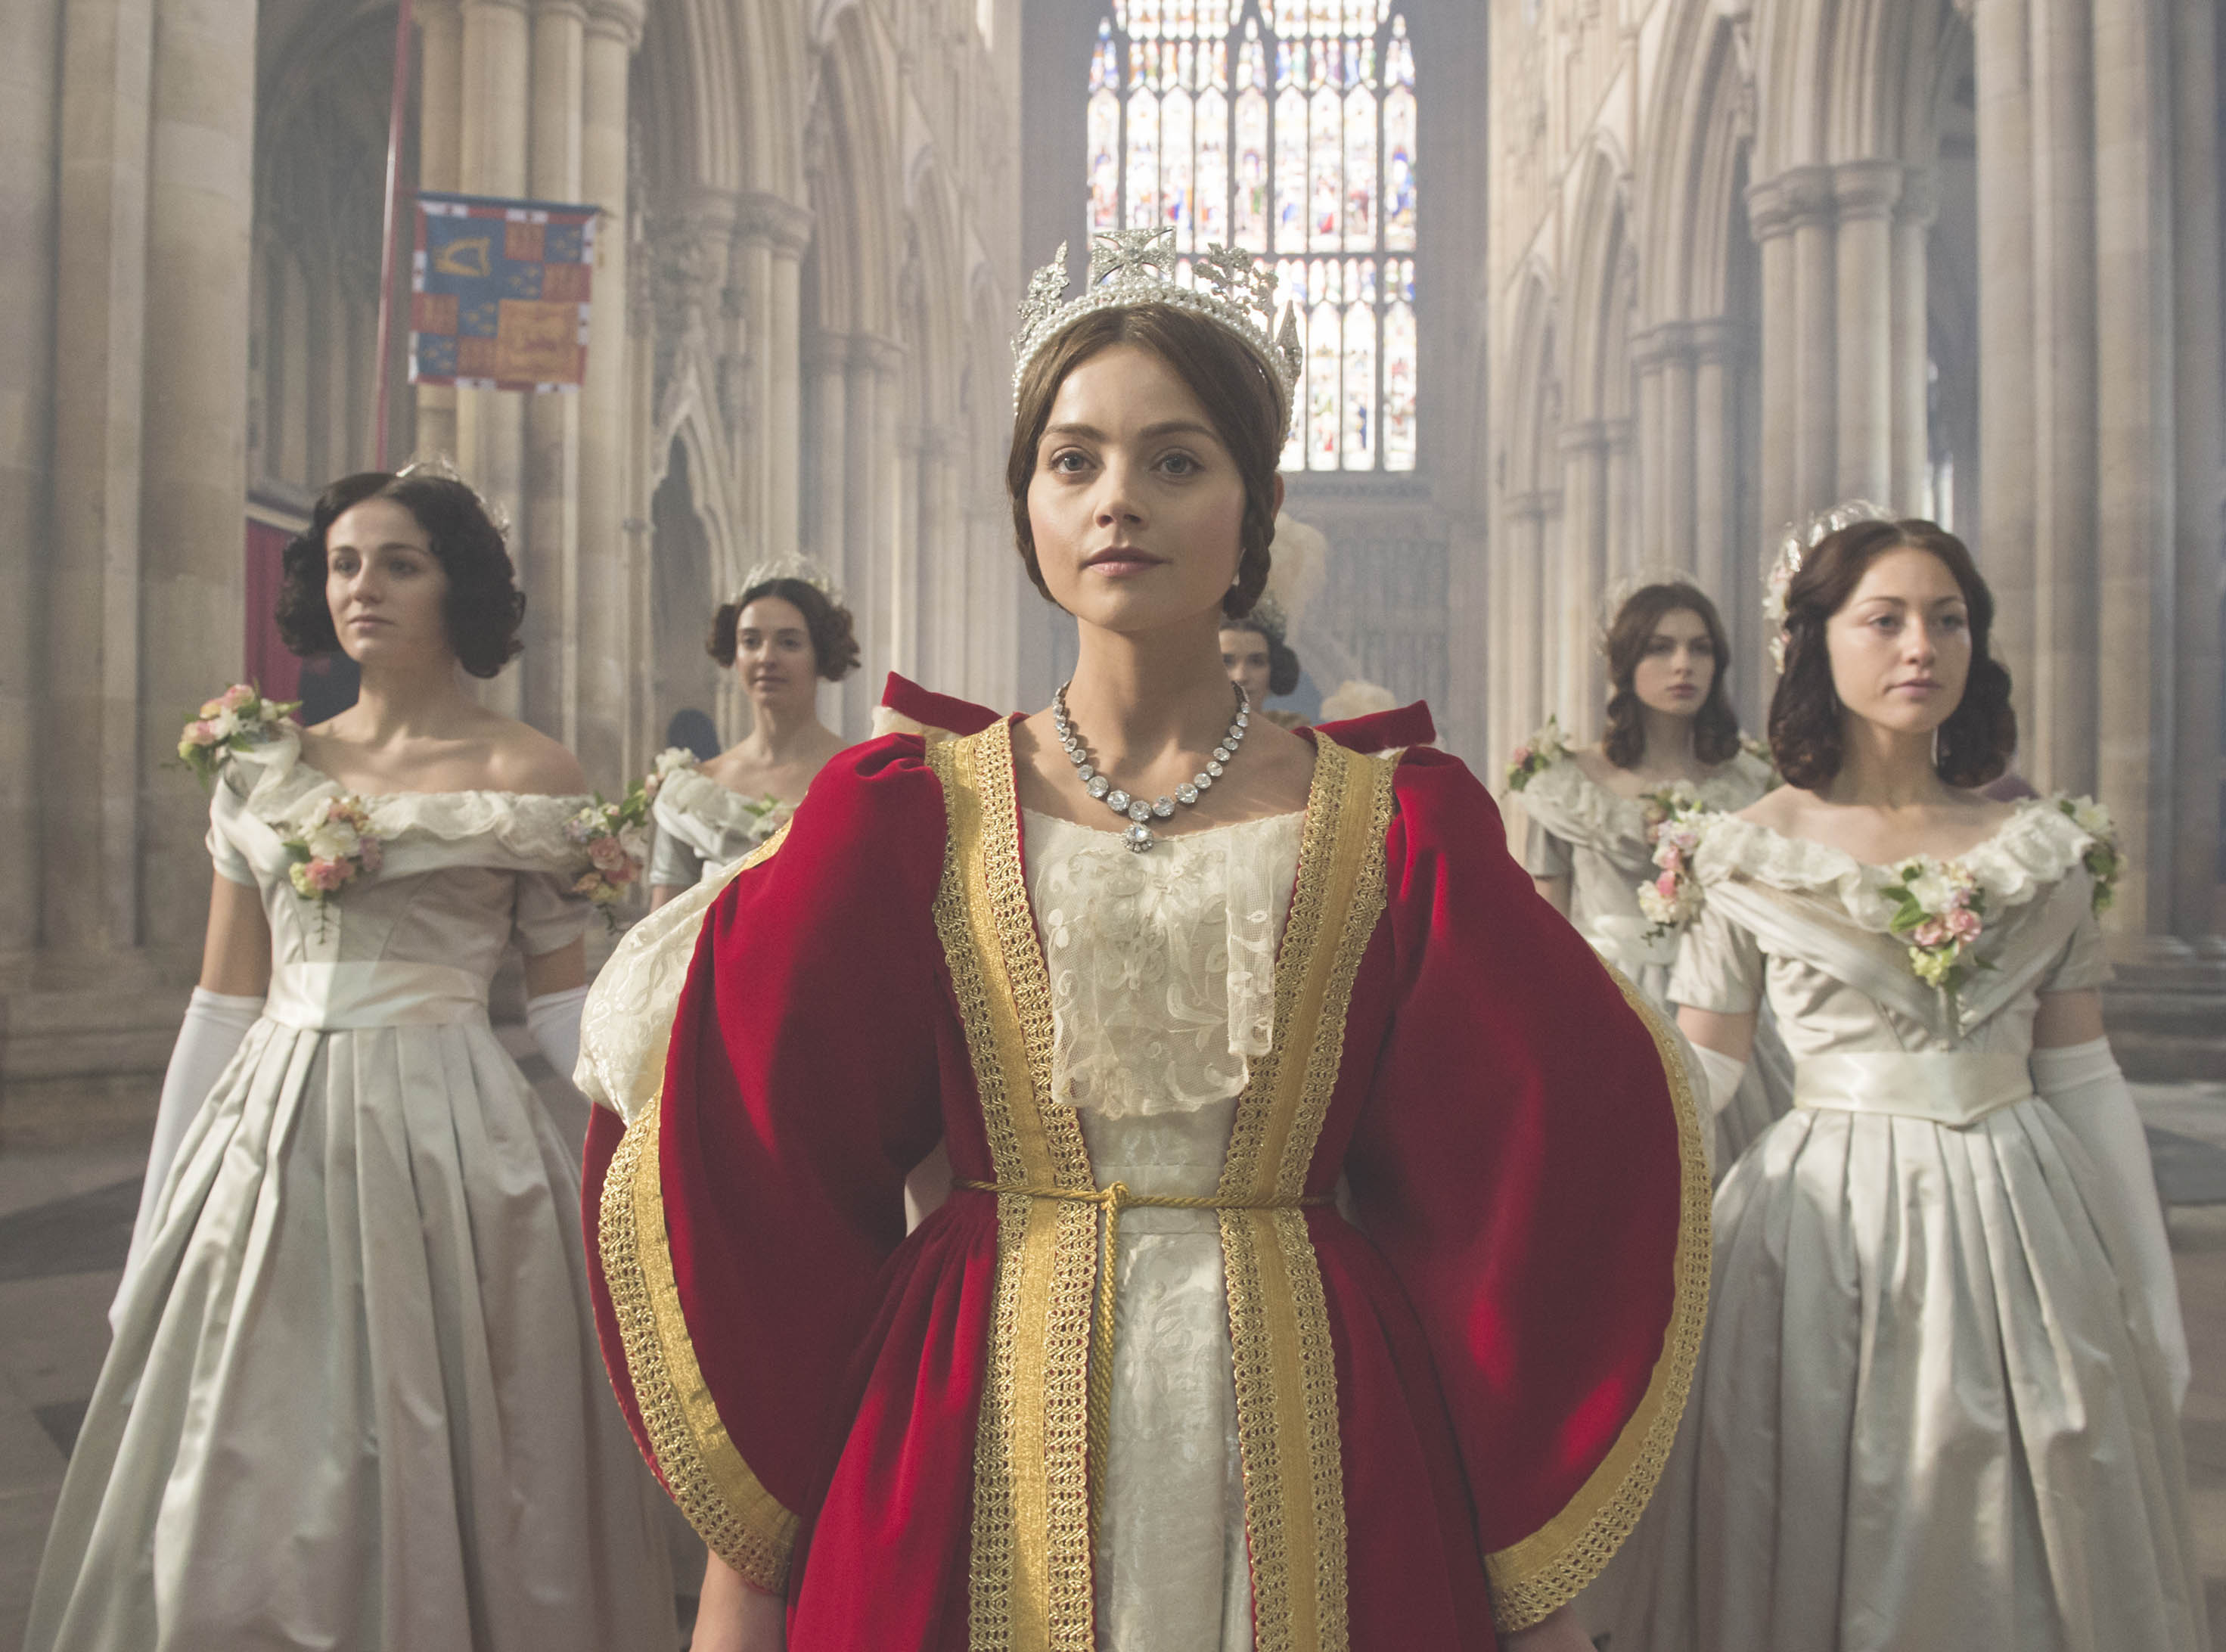 Jenna Coleman stars as Queen Victoria